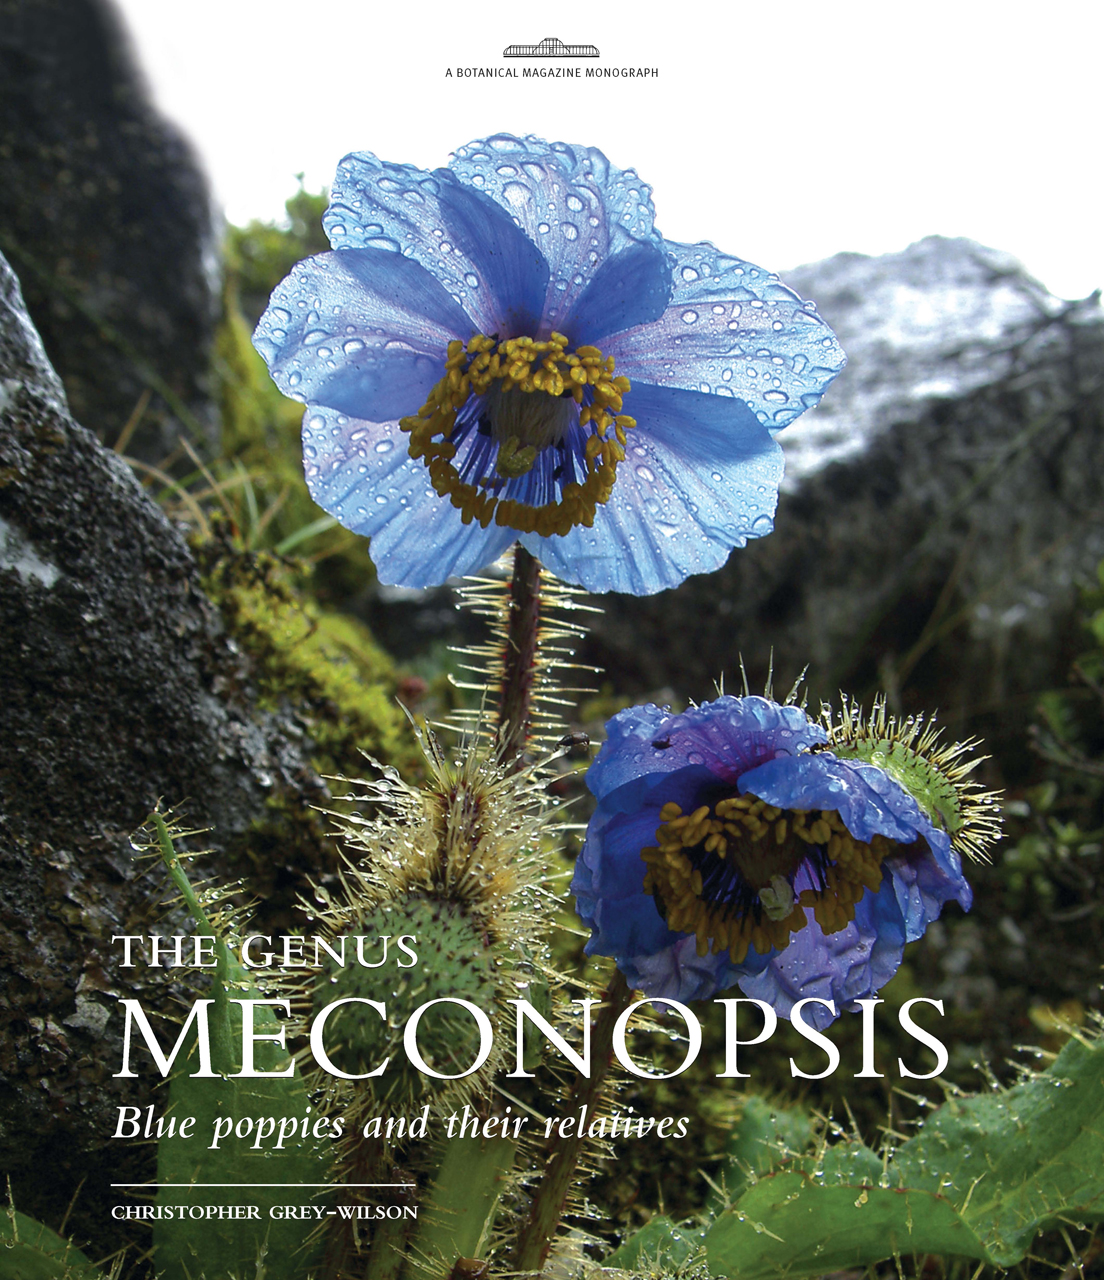 The Genus Meconopsis: Blue poppies and their relatives